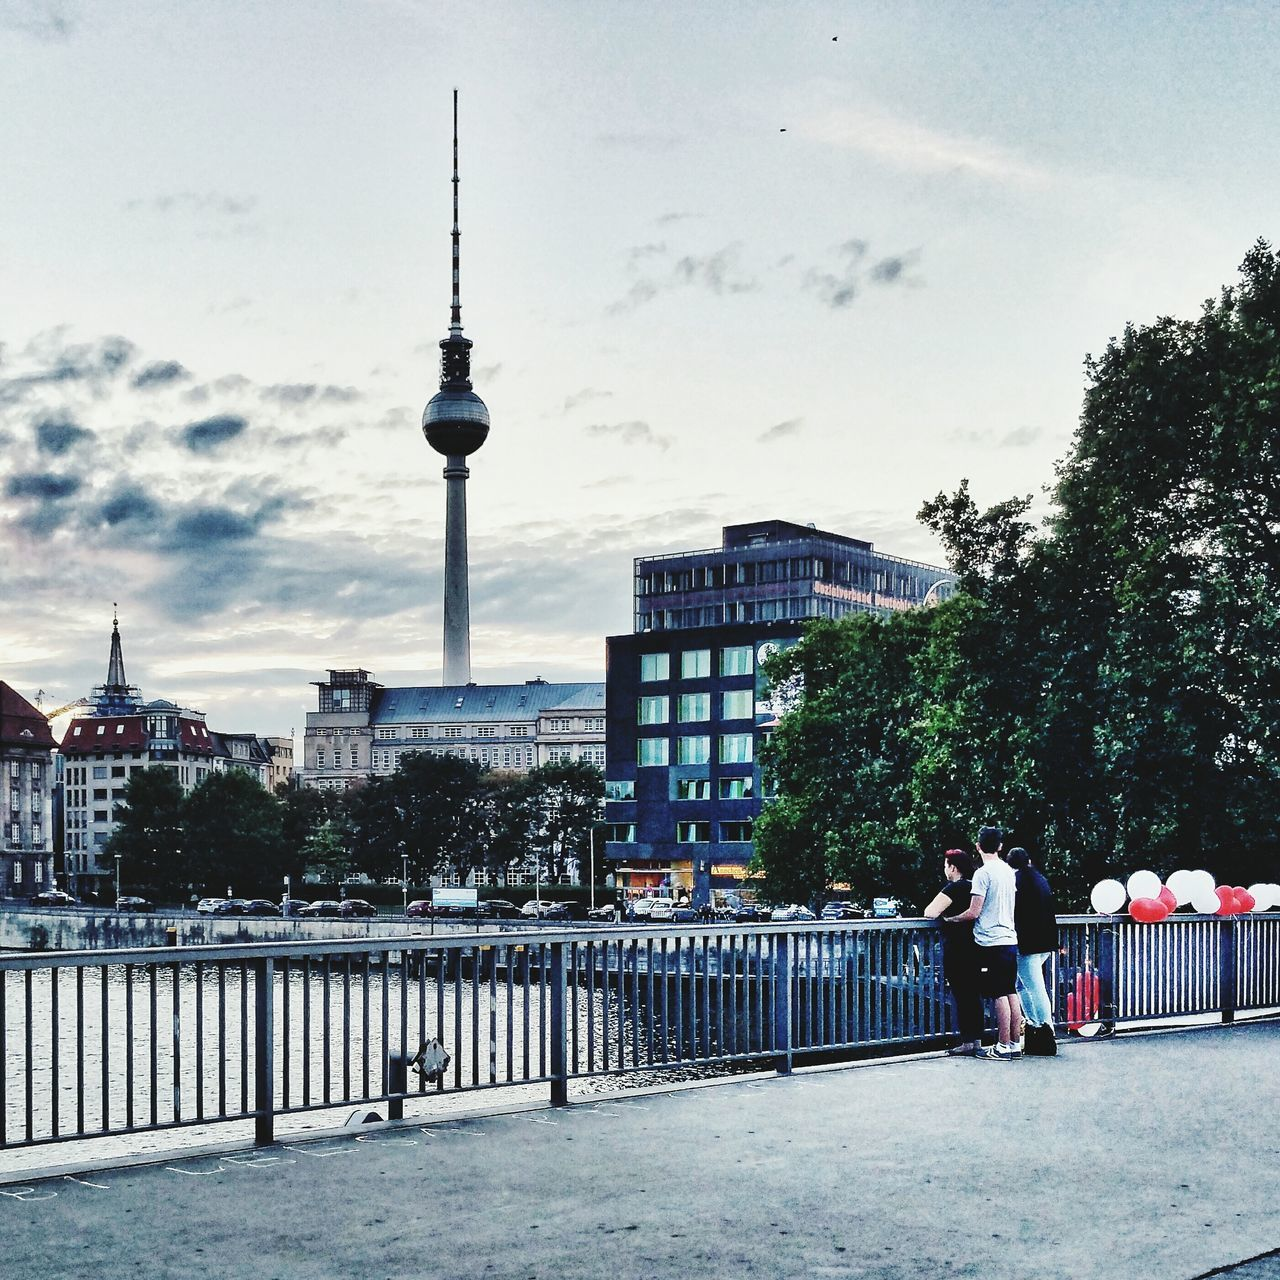 Berliner Ansichten Berlin Photography Berlin Mitte Berlinstagram Sunset_collection Alex Tvtower #berlin #alexanderplatz Streetphotography UrbanPoetry Urbanphotography Urban Romantic Streetsofberlin Streetsofberladelphia Berladelphia Eye4photography  Cinema In Your Life Scenic View Sky_collection